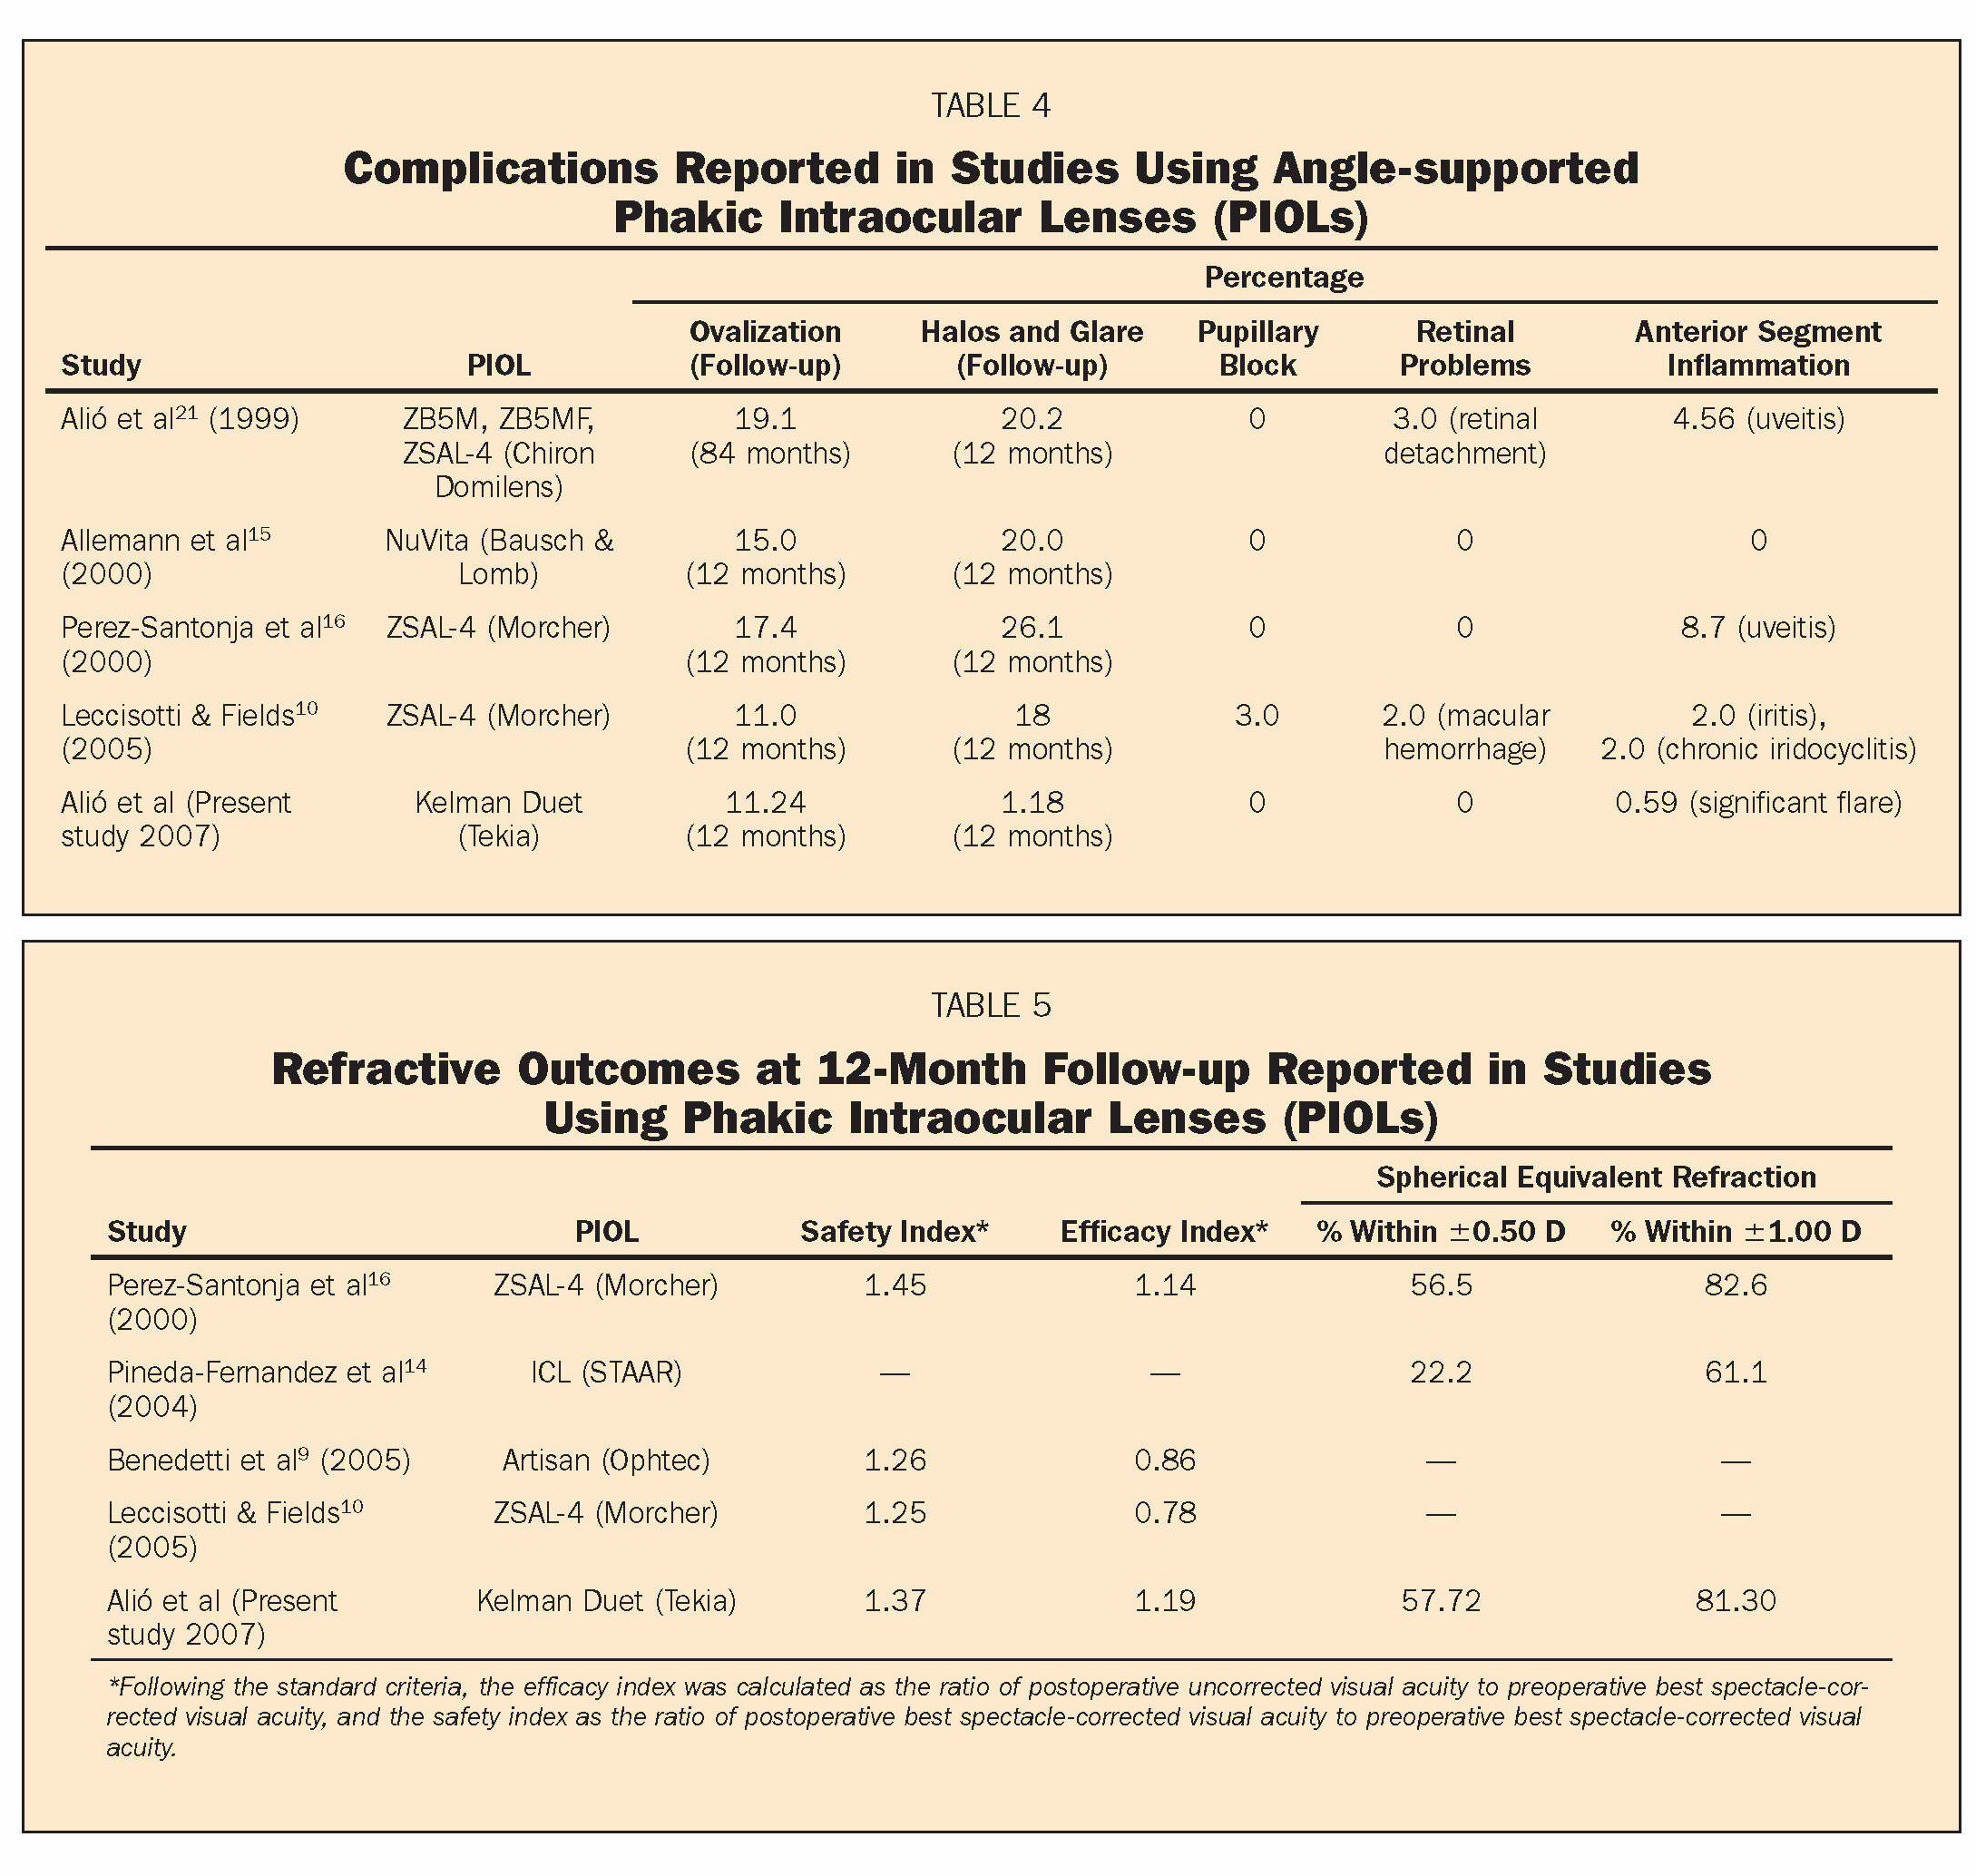 TABLE 4Complications Reported in Studies Using Angle-supported Phakic Intraocular Lenses (PIOLs)TABLE 5Refractive Outcomes at 12-Month Follow-up Reported in Studies Using Phakic Intraocular Lenses (PIOLs)